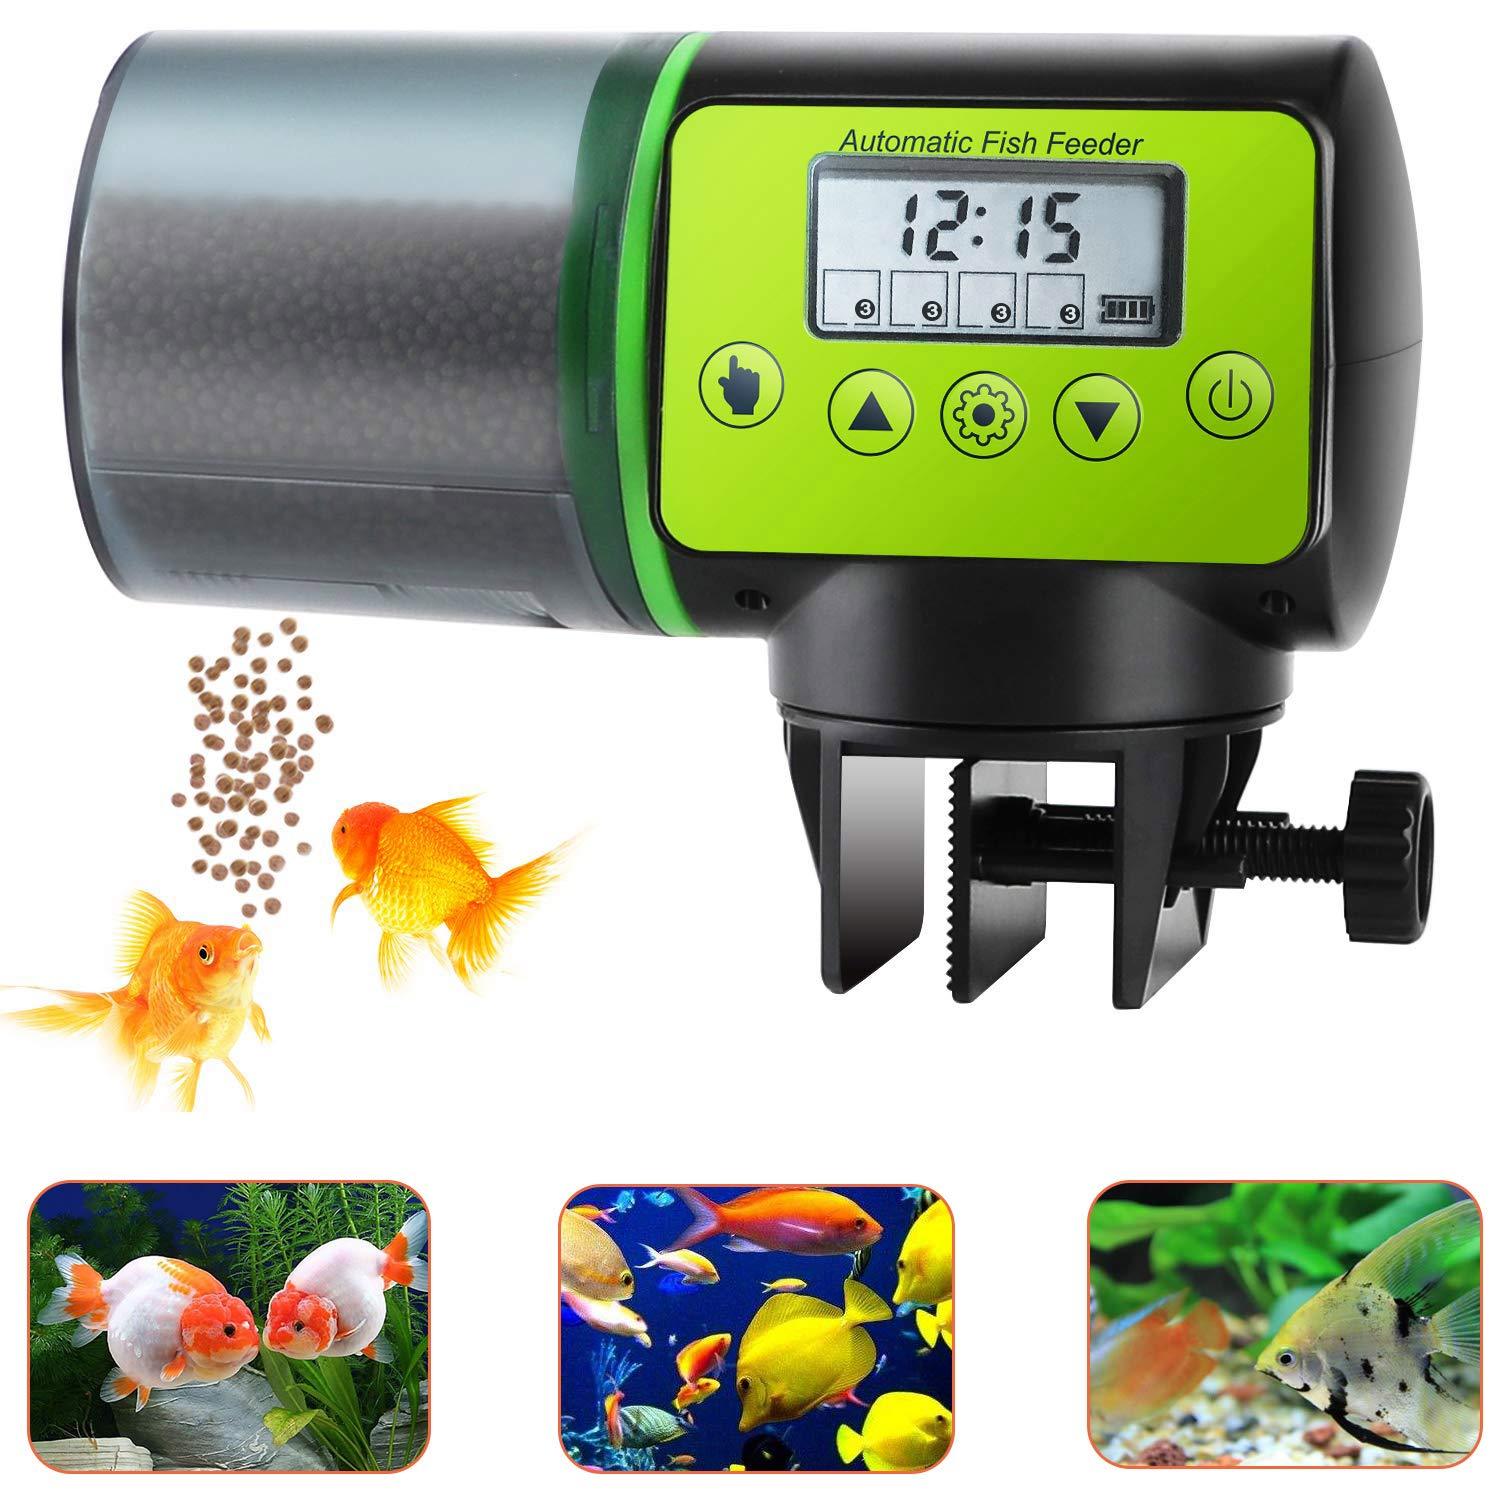 lychee Automatic Fish Feeder Upgraded 200ml Moisture-Proof Automatic Aquarium Fish Feeder Vacation Fish Food Timer Dispenser for Aquarium 21 Days When You Out Office,Home by lychee